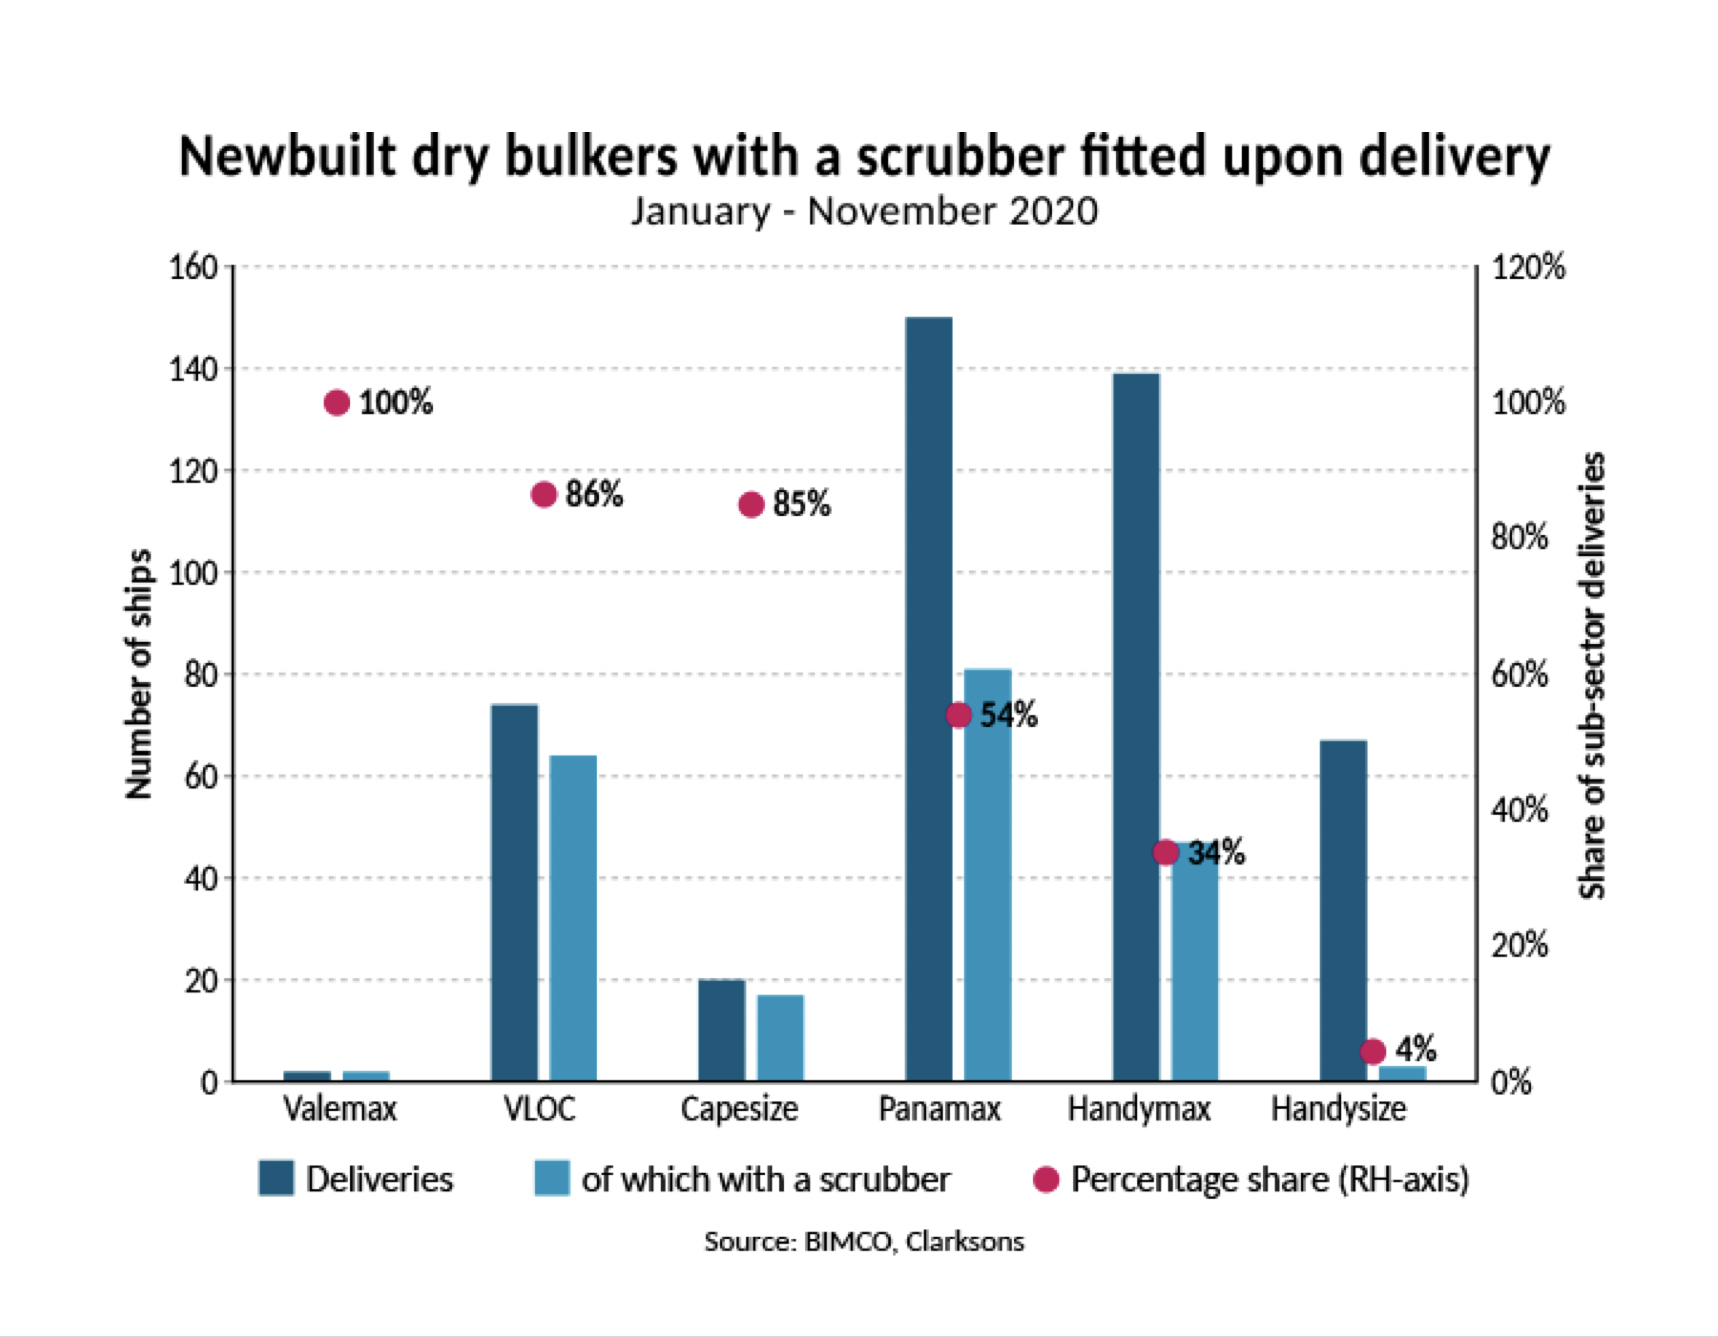 BIMCO: 47% of all newbuilt dry bulkers delivered in 2020 fitted with scrubber